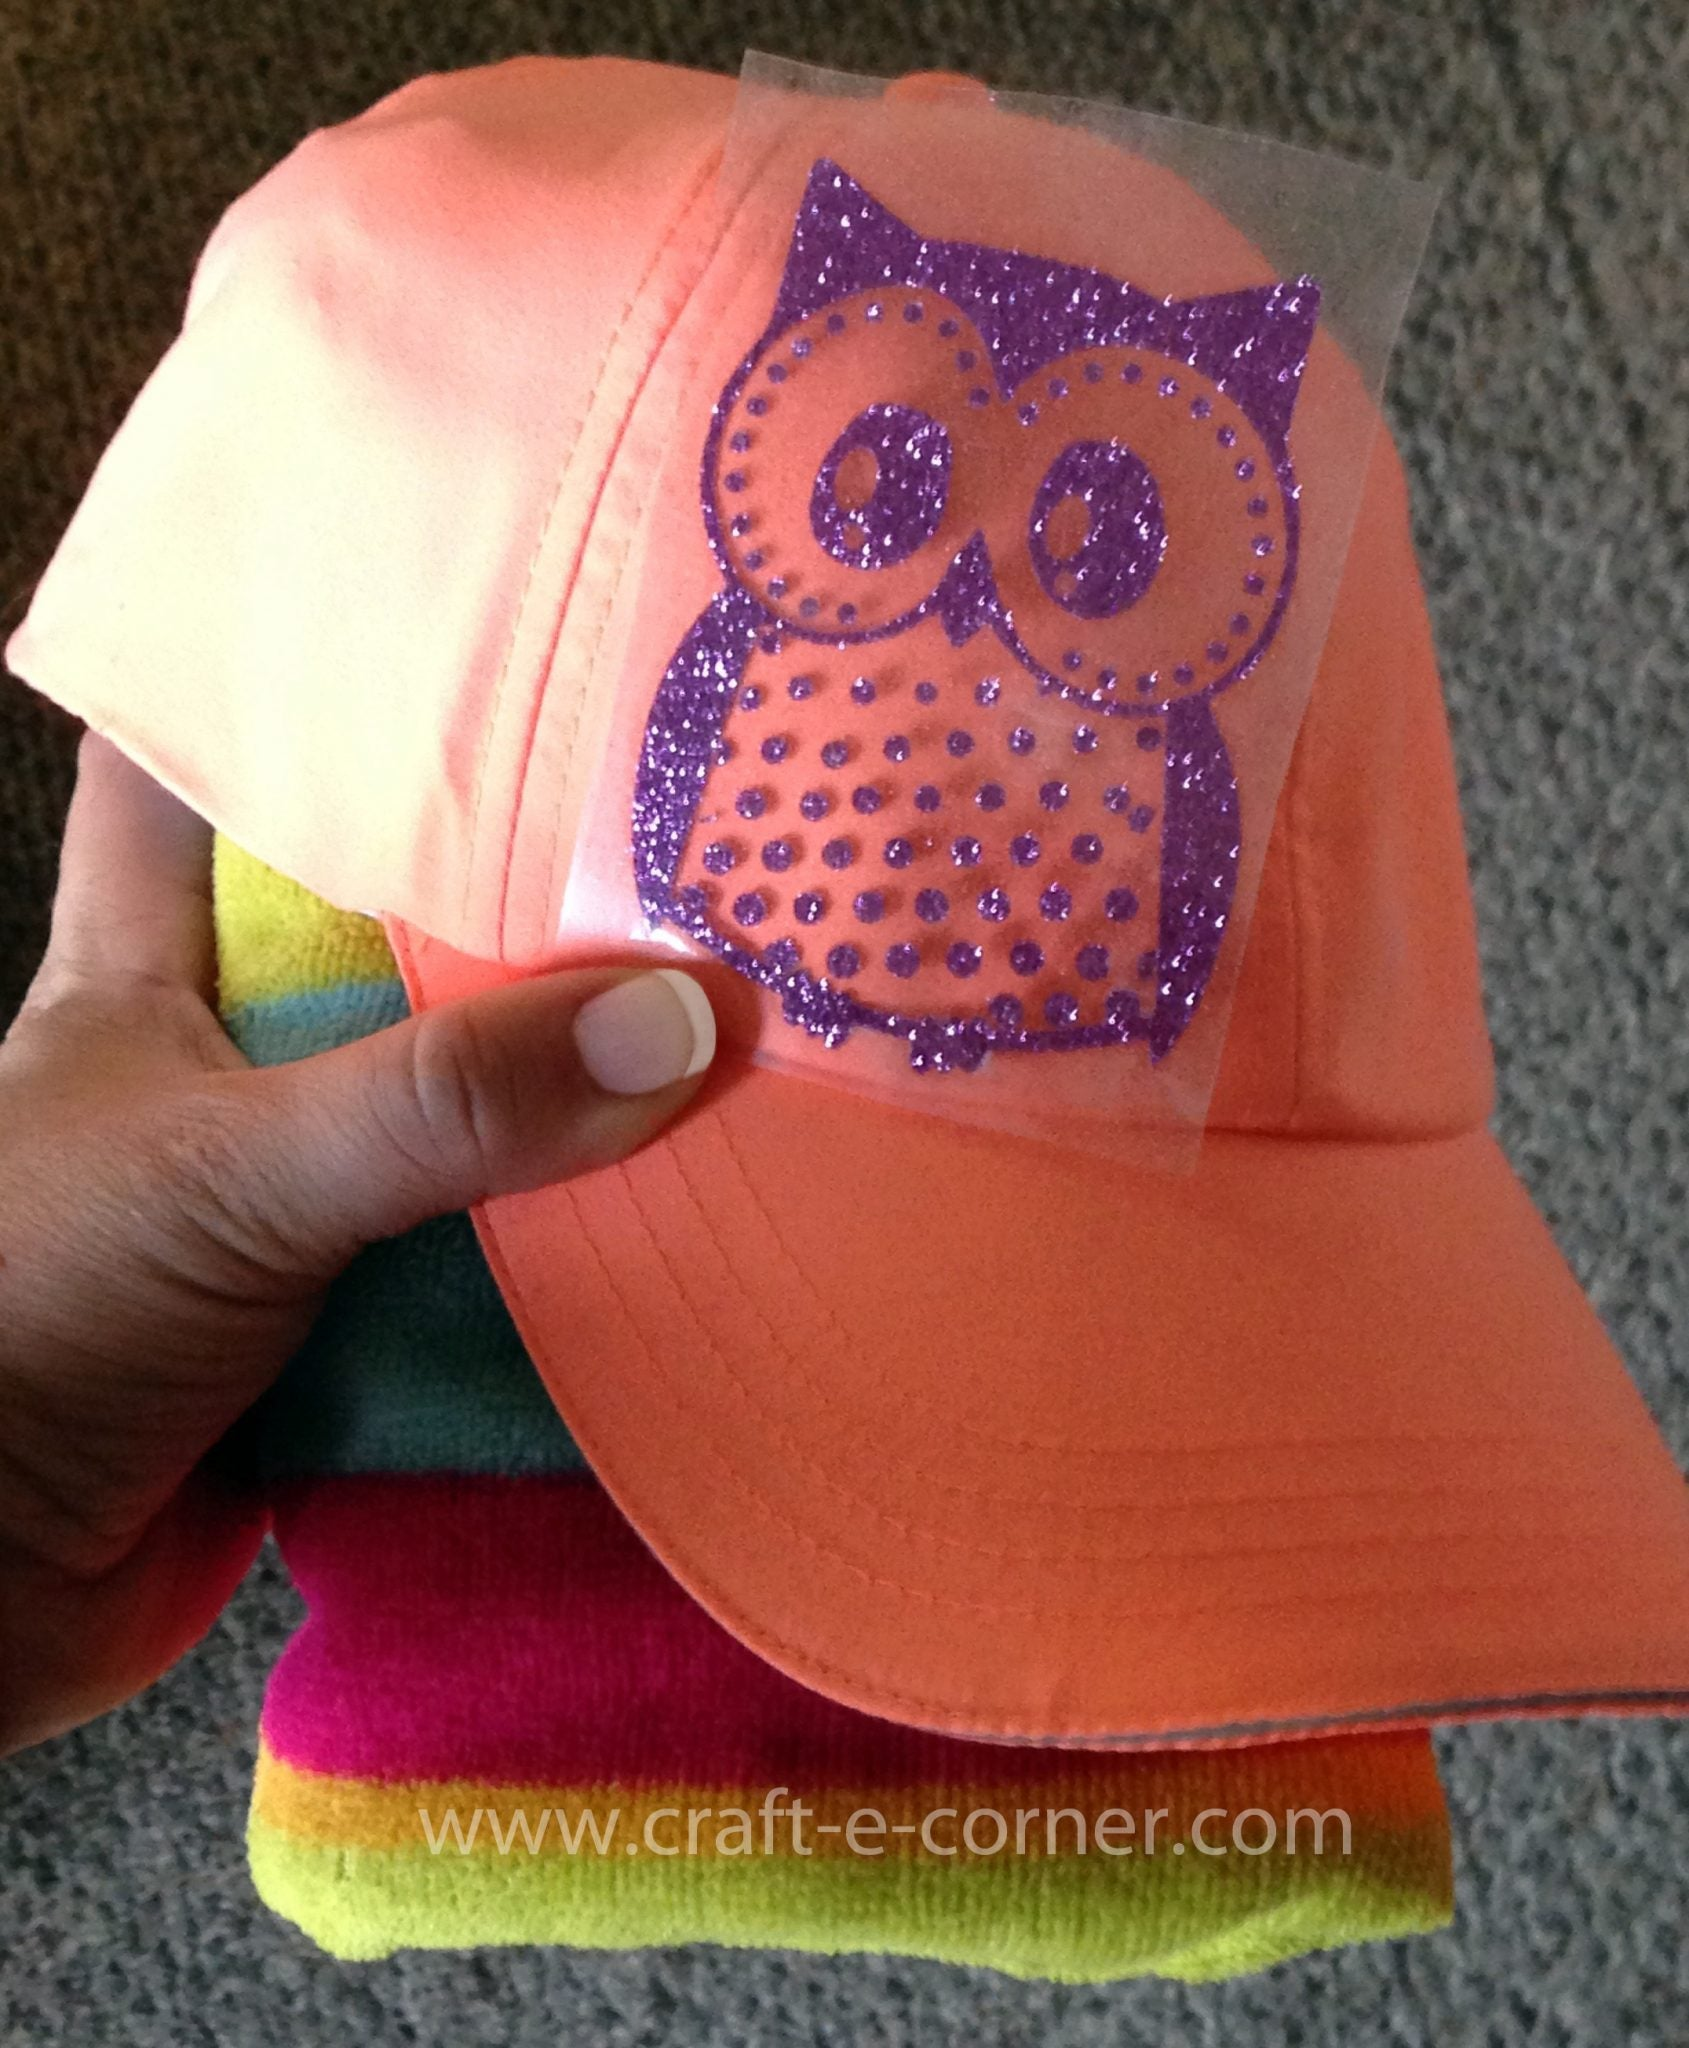 How to Heat Press HTV to A Hat (No Special Attachment Needed